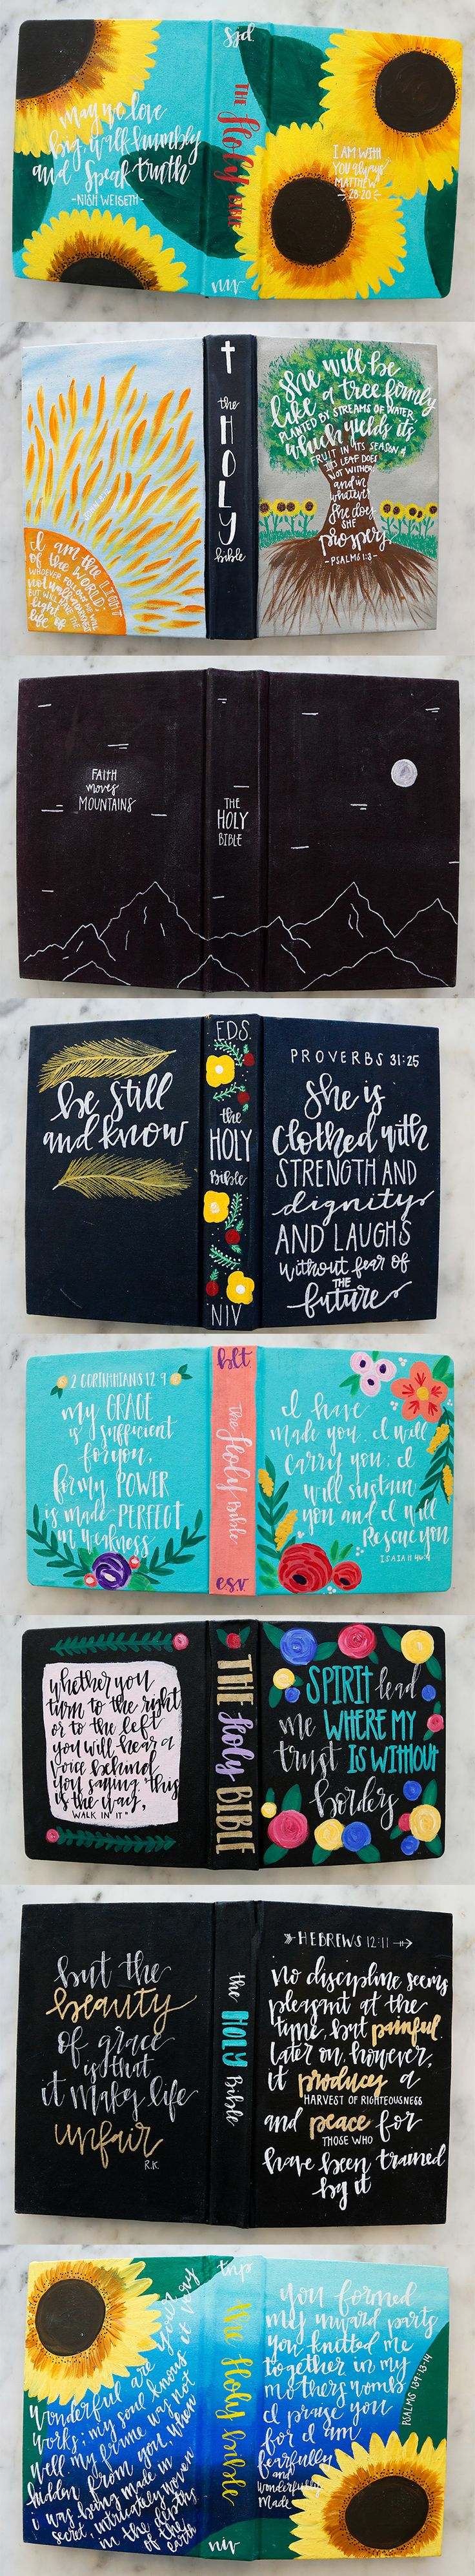 A small taste of the recent collection of custom Bibles we created for some amazing people this week. Let us be a part of your journey by planting a seed with us over on our website to create your Custom Bible today!